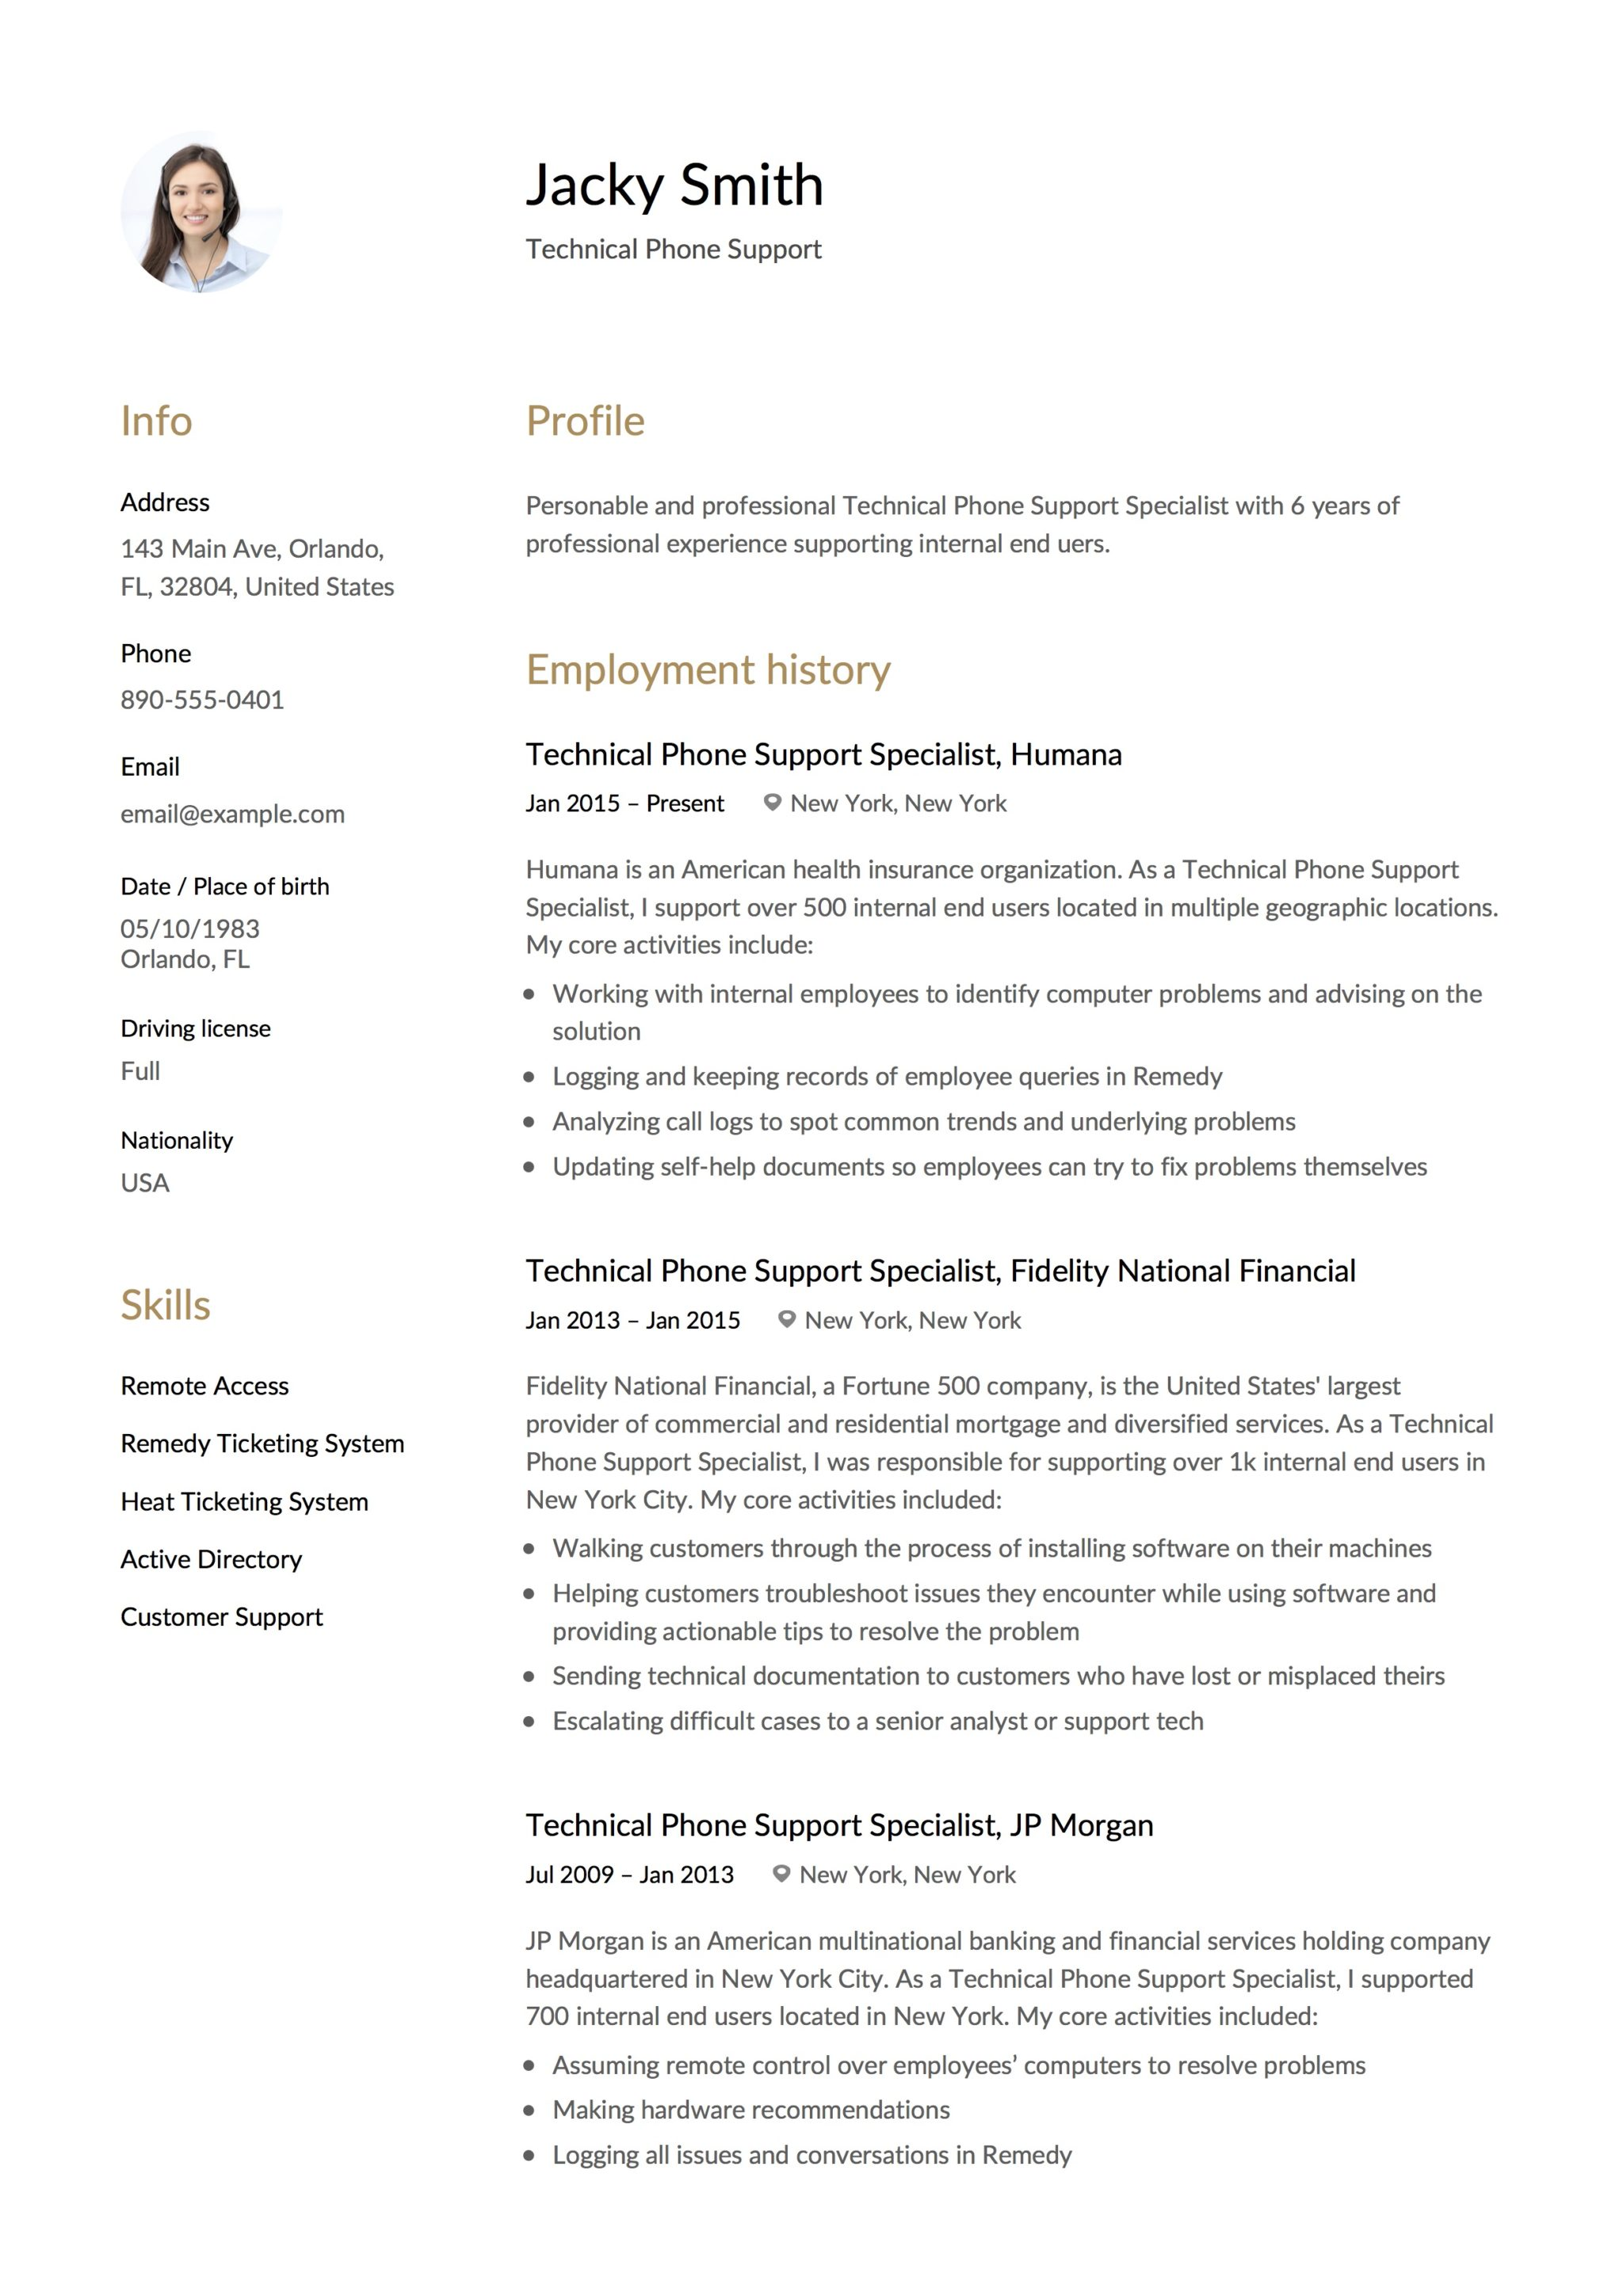 Resume Example Technical Phone Support